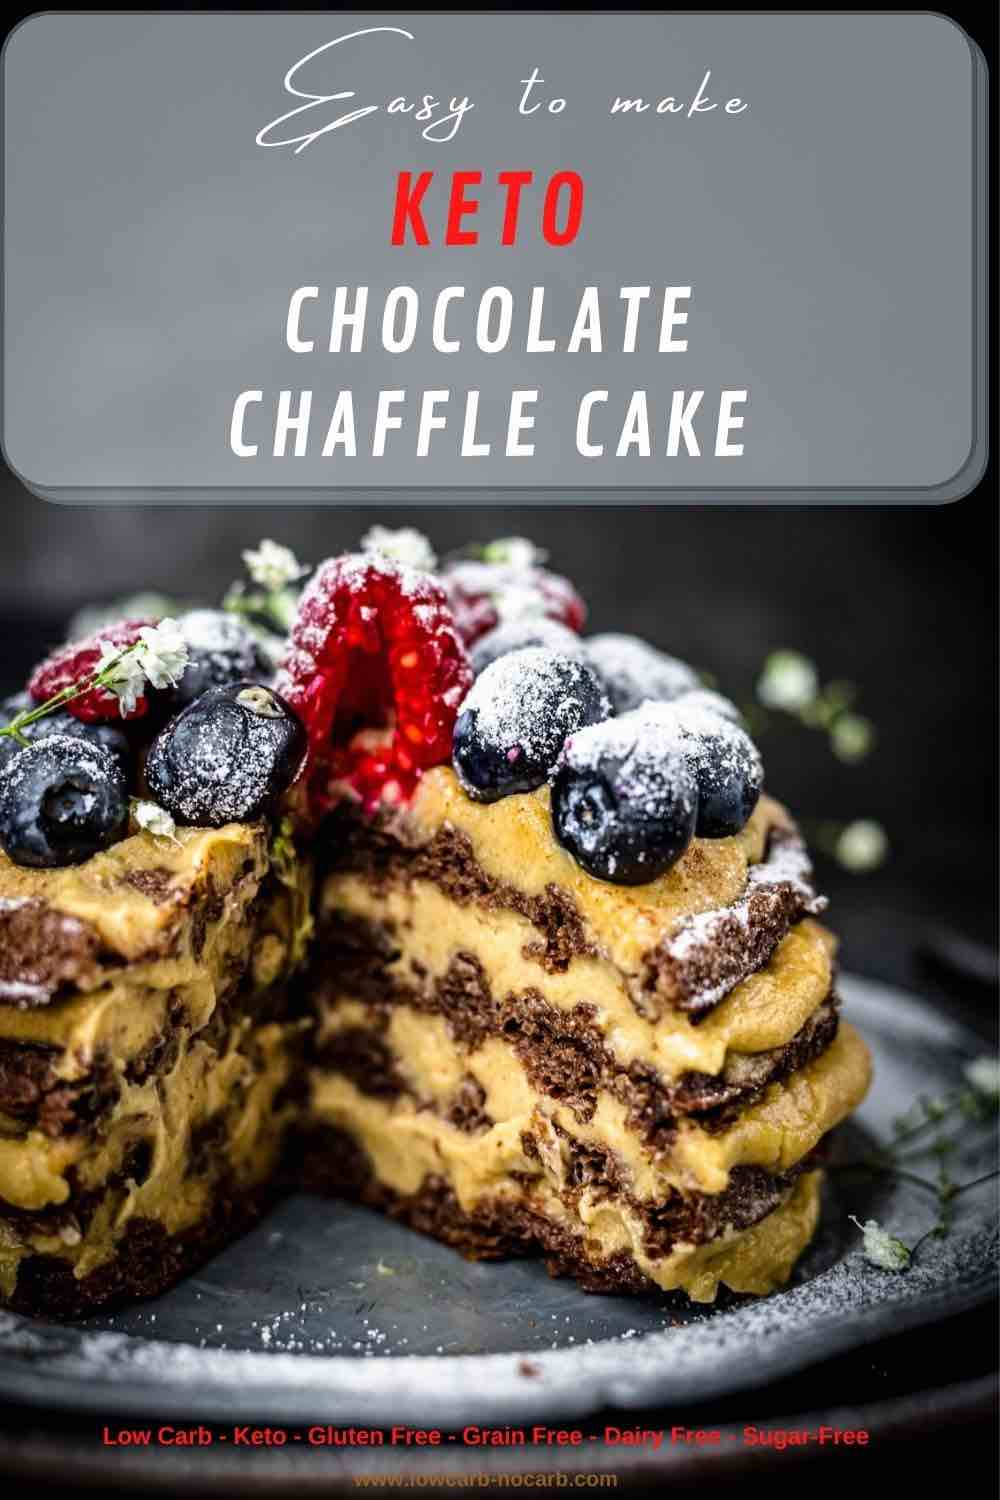 Keto Chocolate Waffle Cake cut and seen from inside the cake